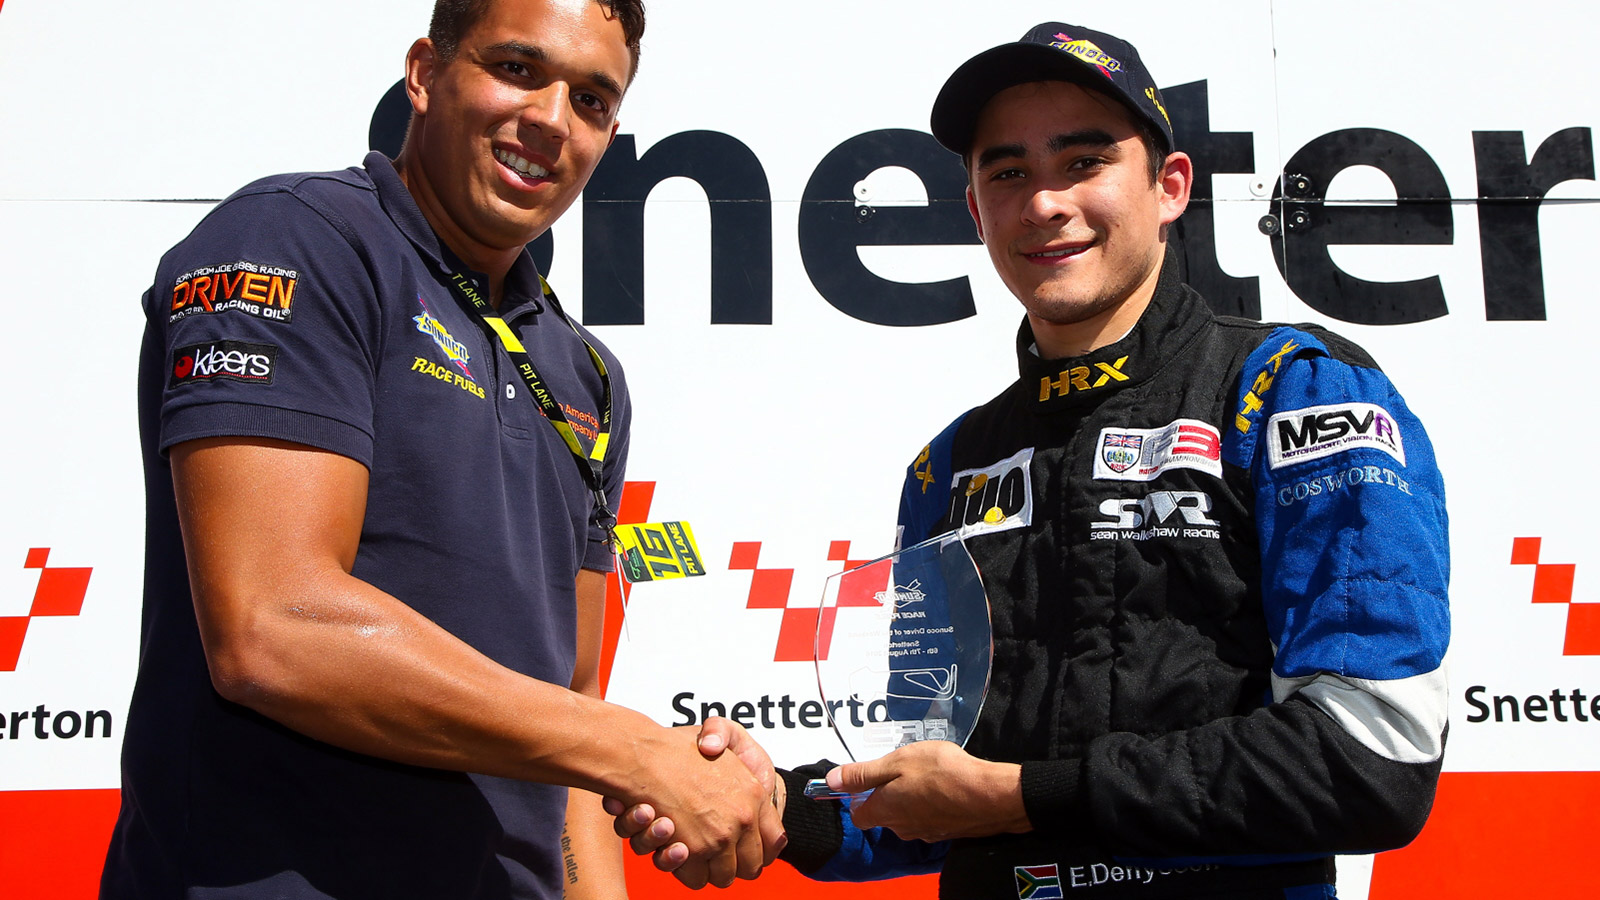 Eugene Denyssen was awarded the 'Sunoco Driver of the Weekend' accolade.